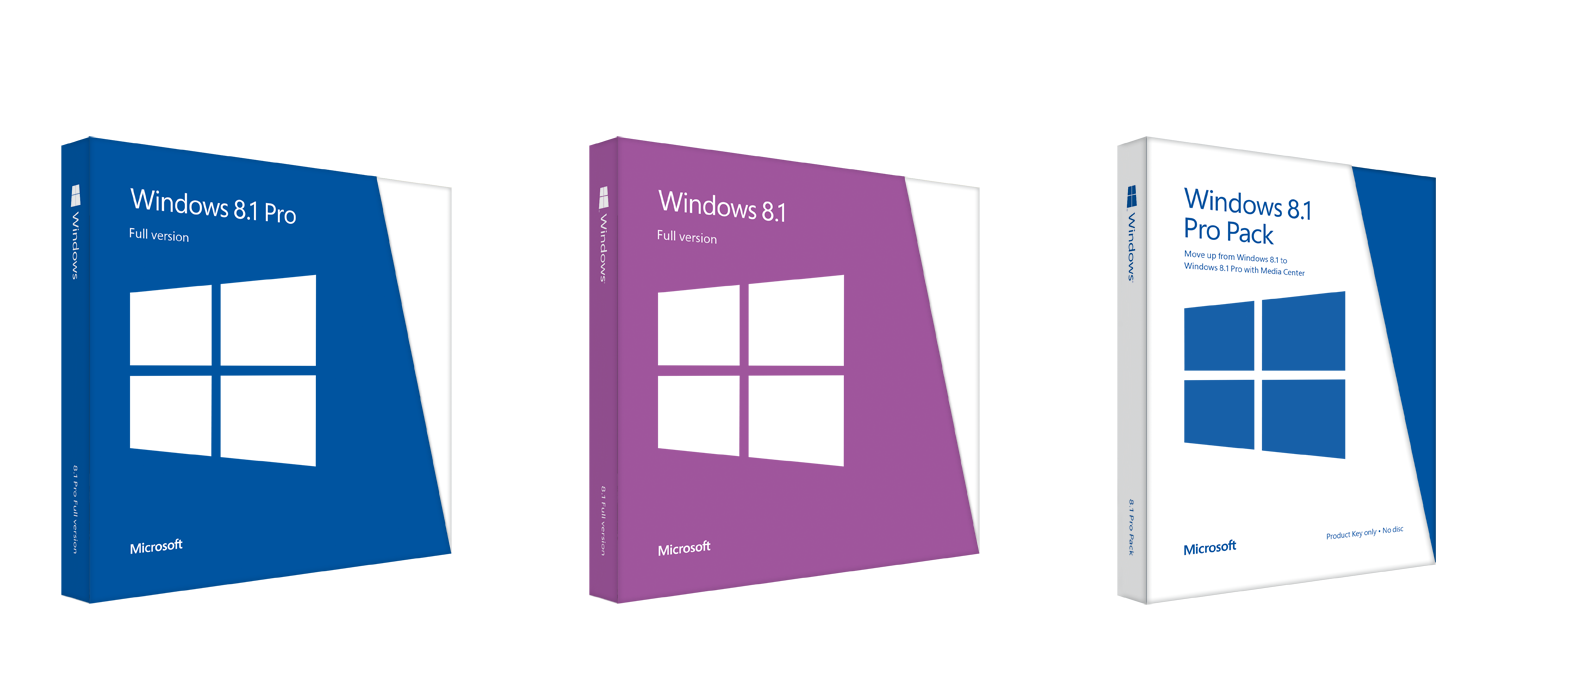 Imagine Windows 10 was made free for all users from Vista and up u2013 the  install base would quickly shift to the latest version (just like OS X  users, PlusPng.com  - Microsoft Windows 10 PNG